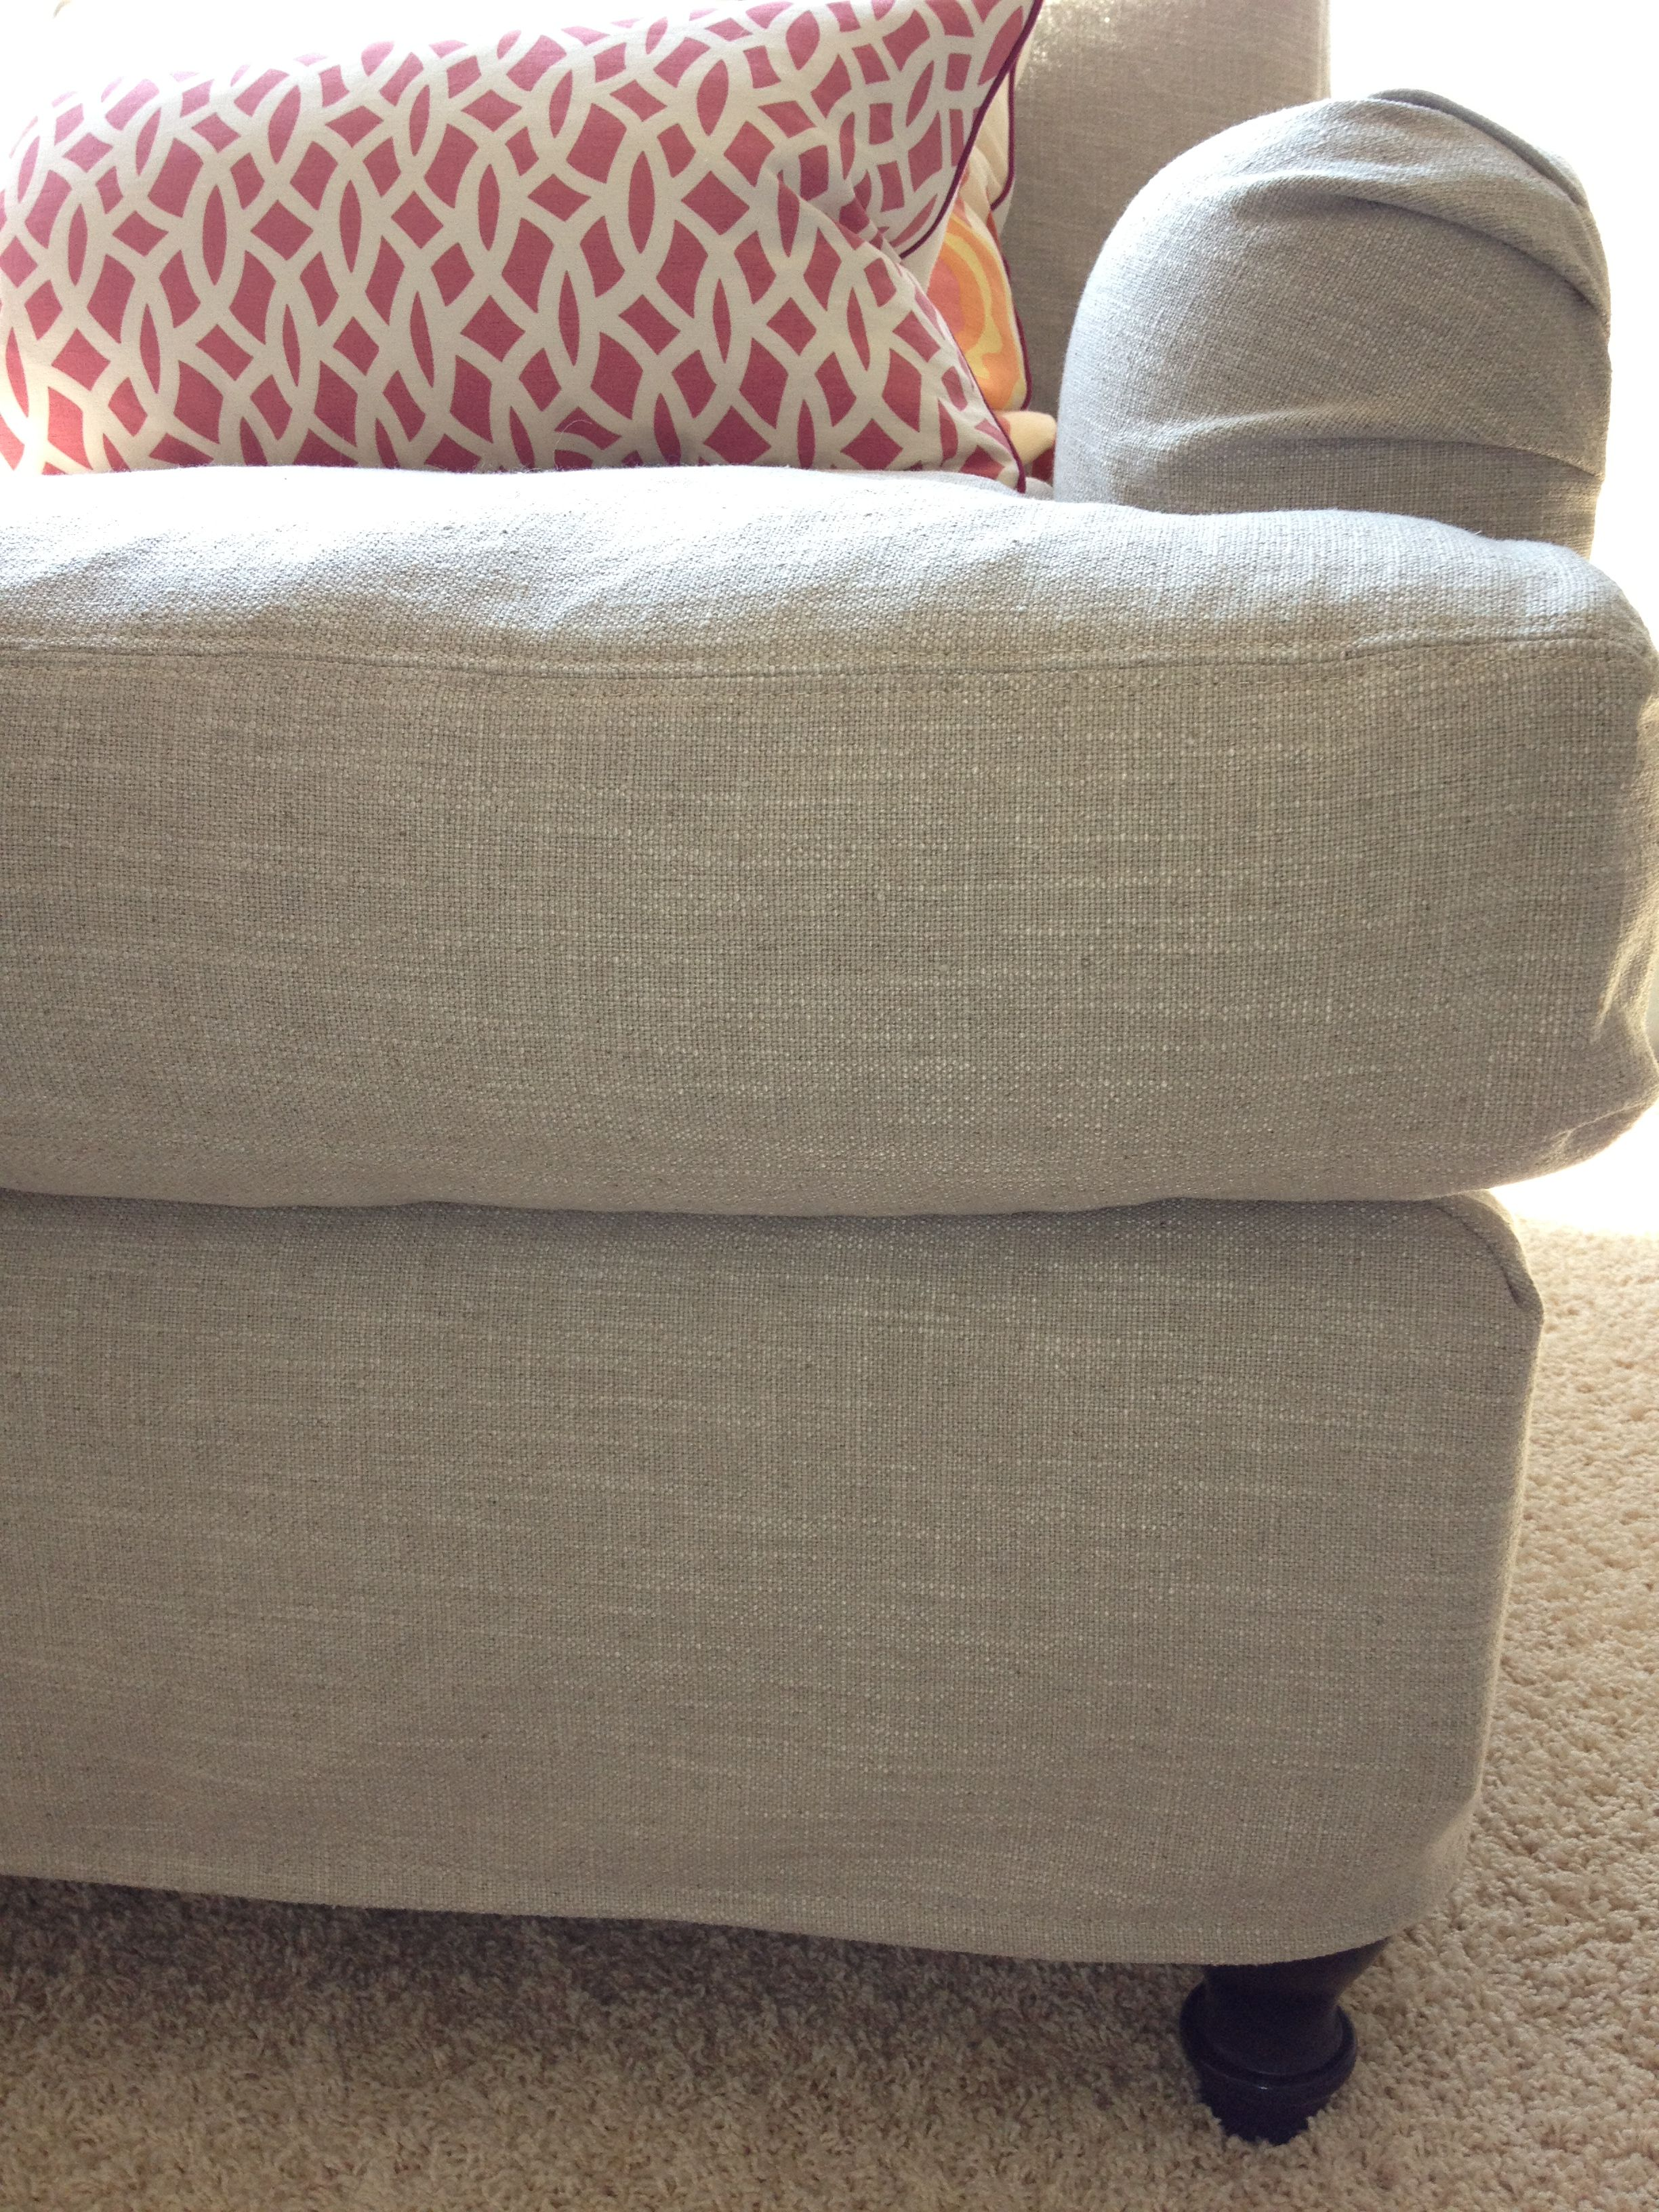 Pottery Barn Carlisle Chair Slipcover In Washed Grainsack